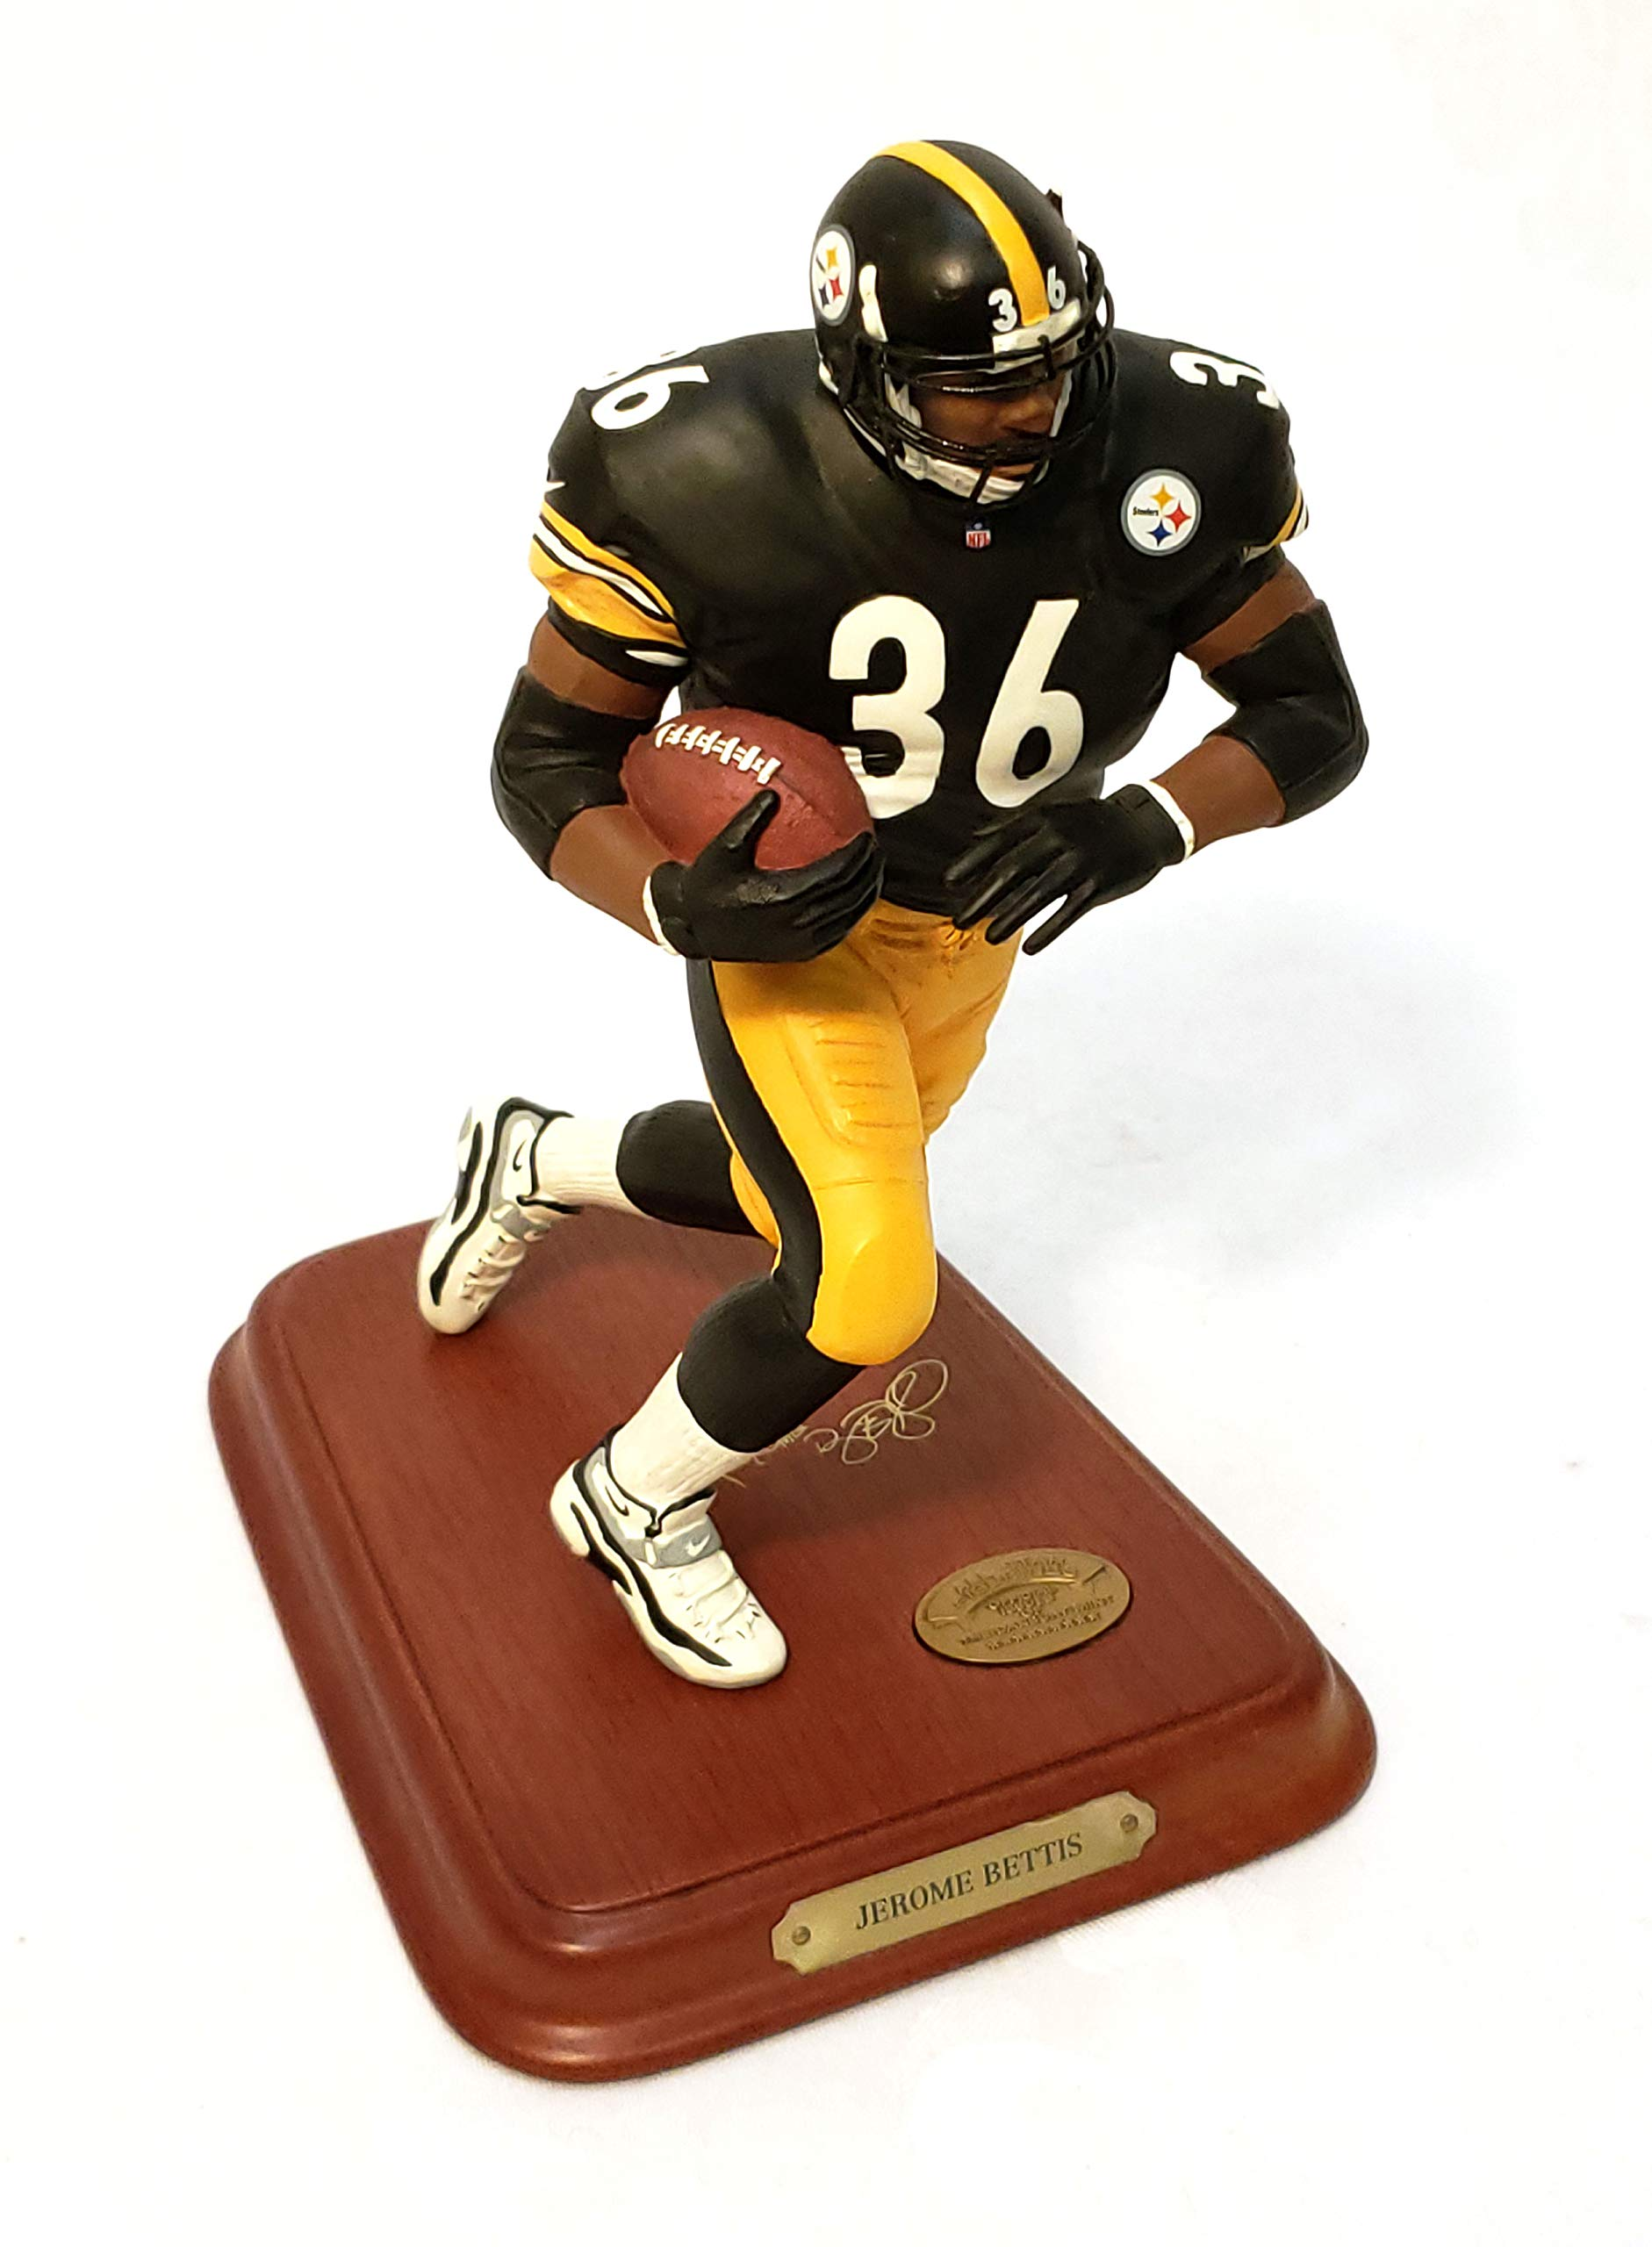 Pittsburgh Steelers Jerome Bettis Danbury Mint Statue Figurine w/COA